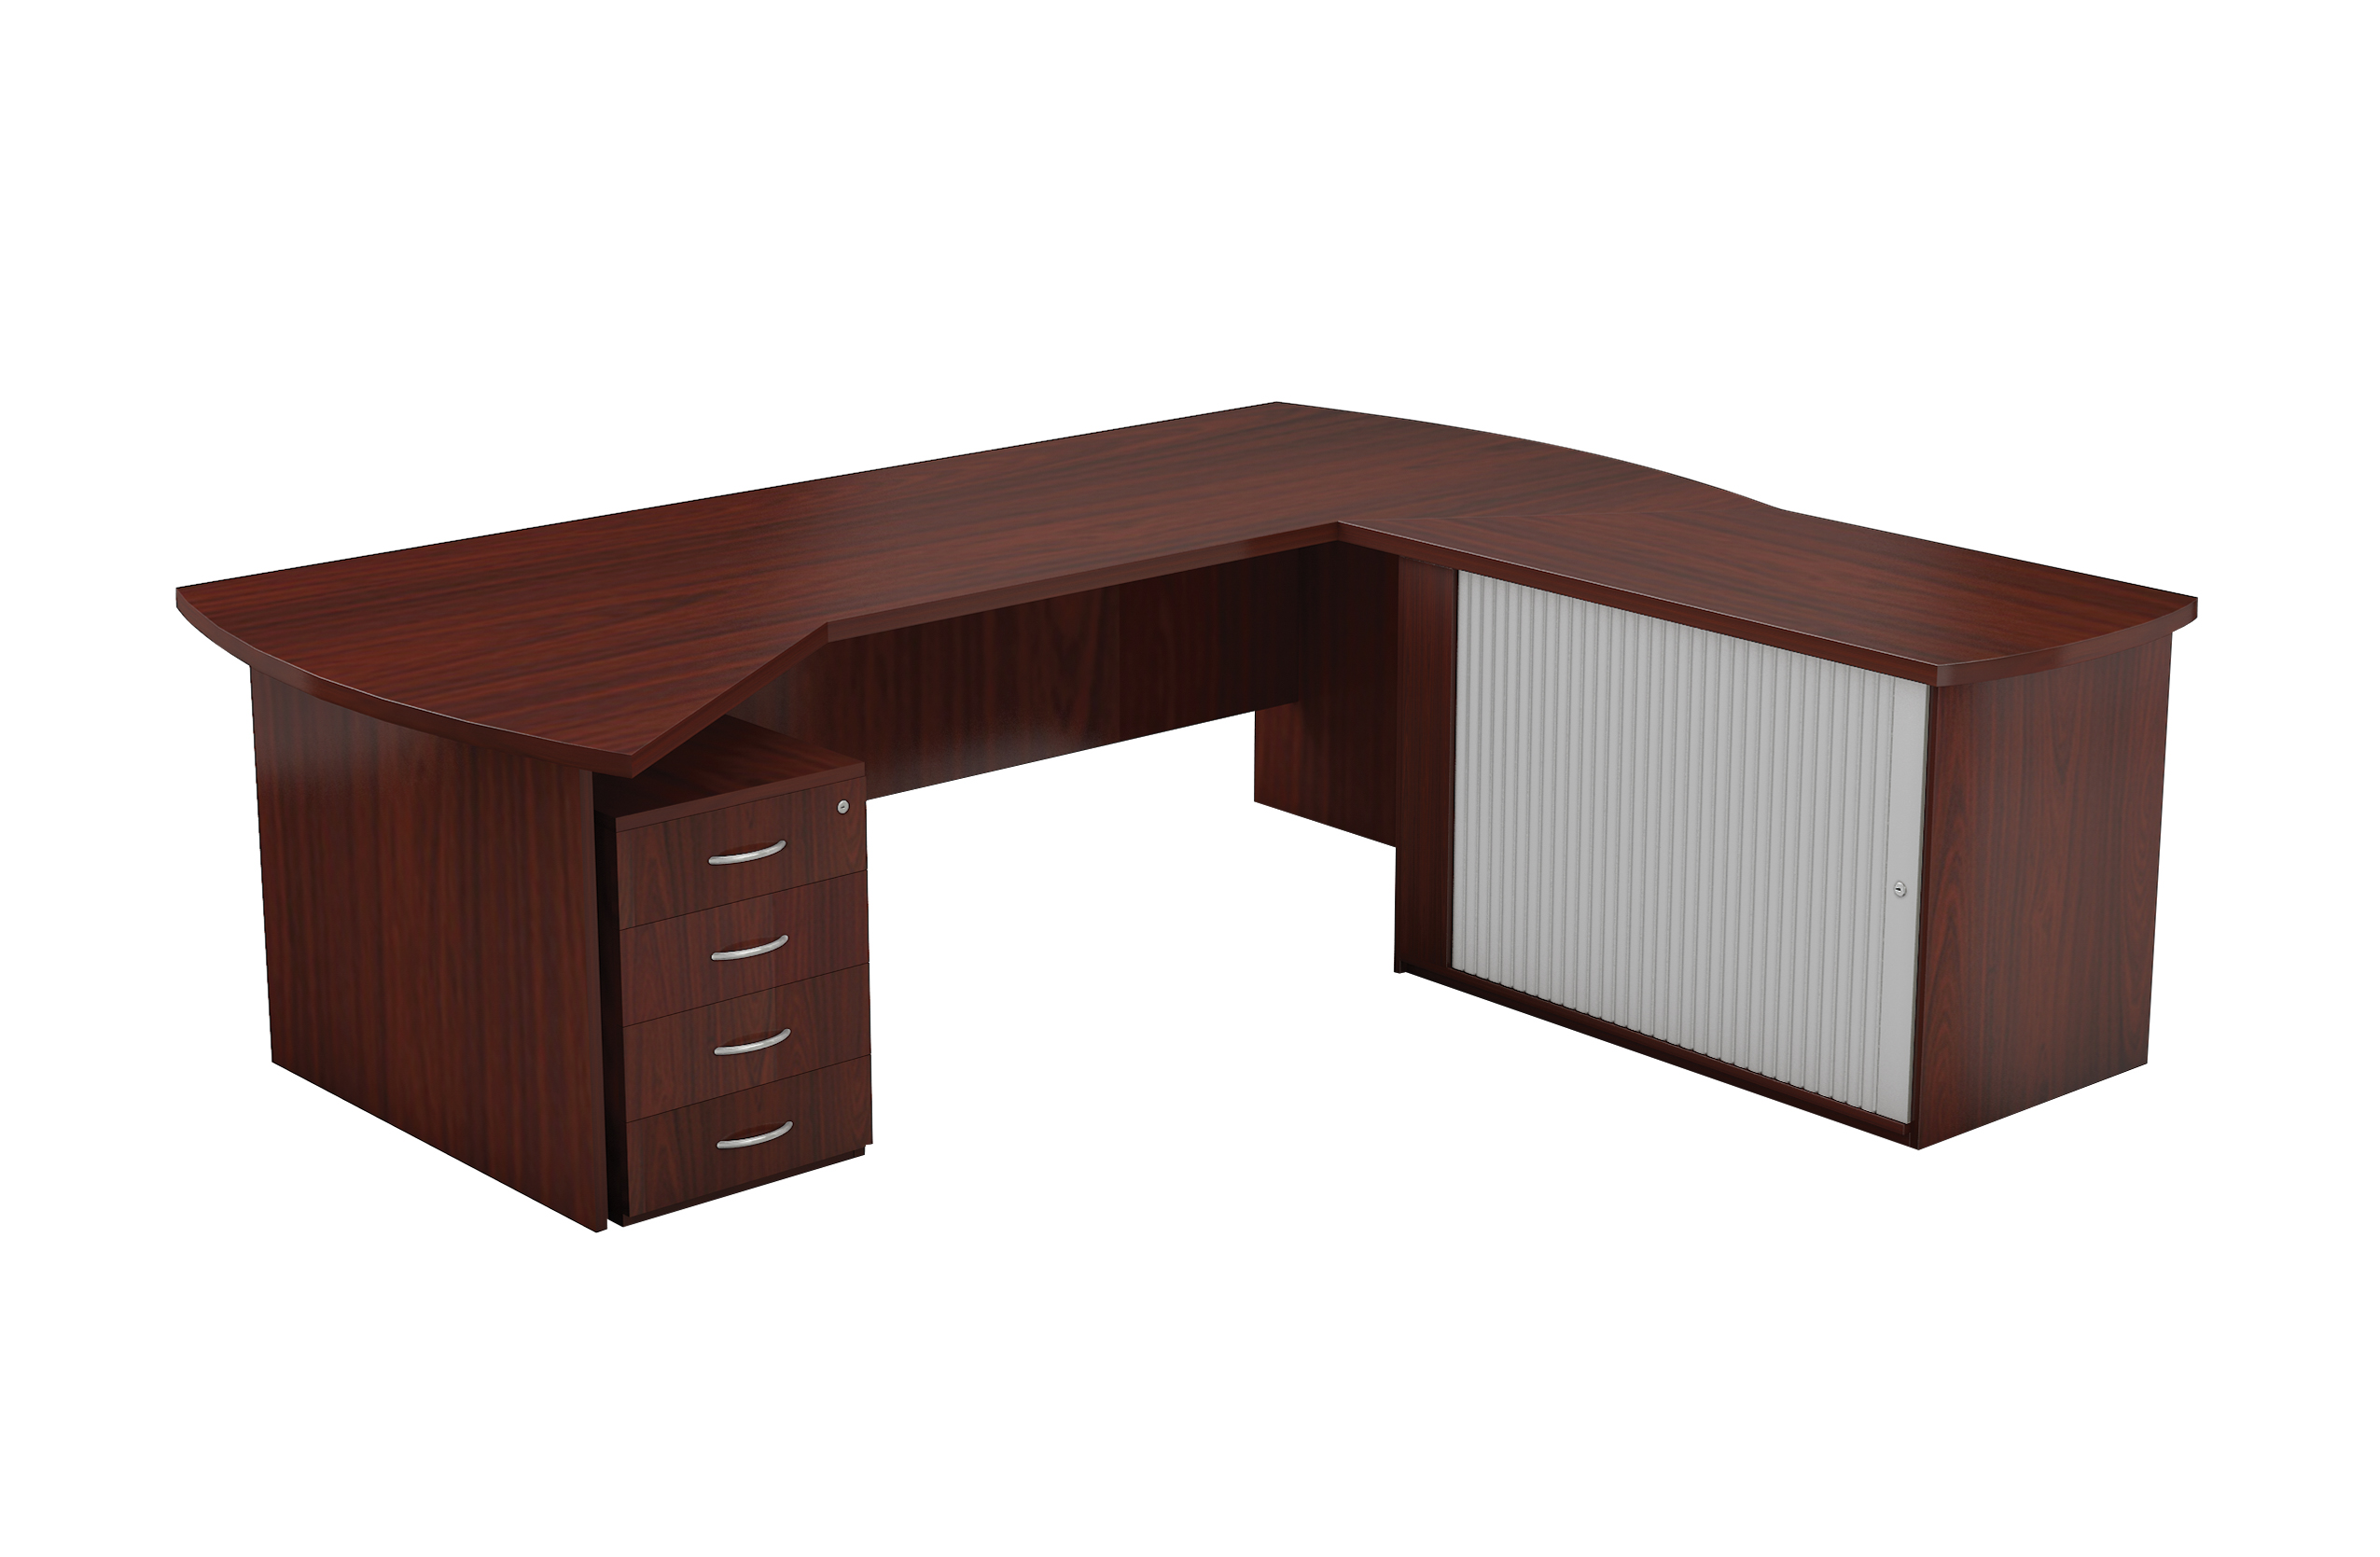 Everest Range with Credenza